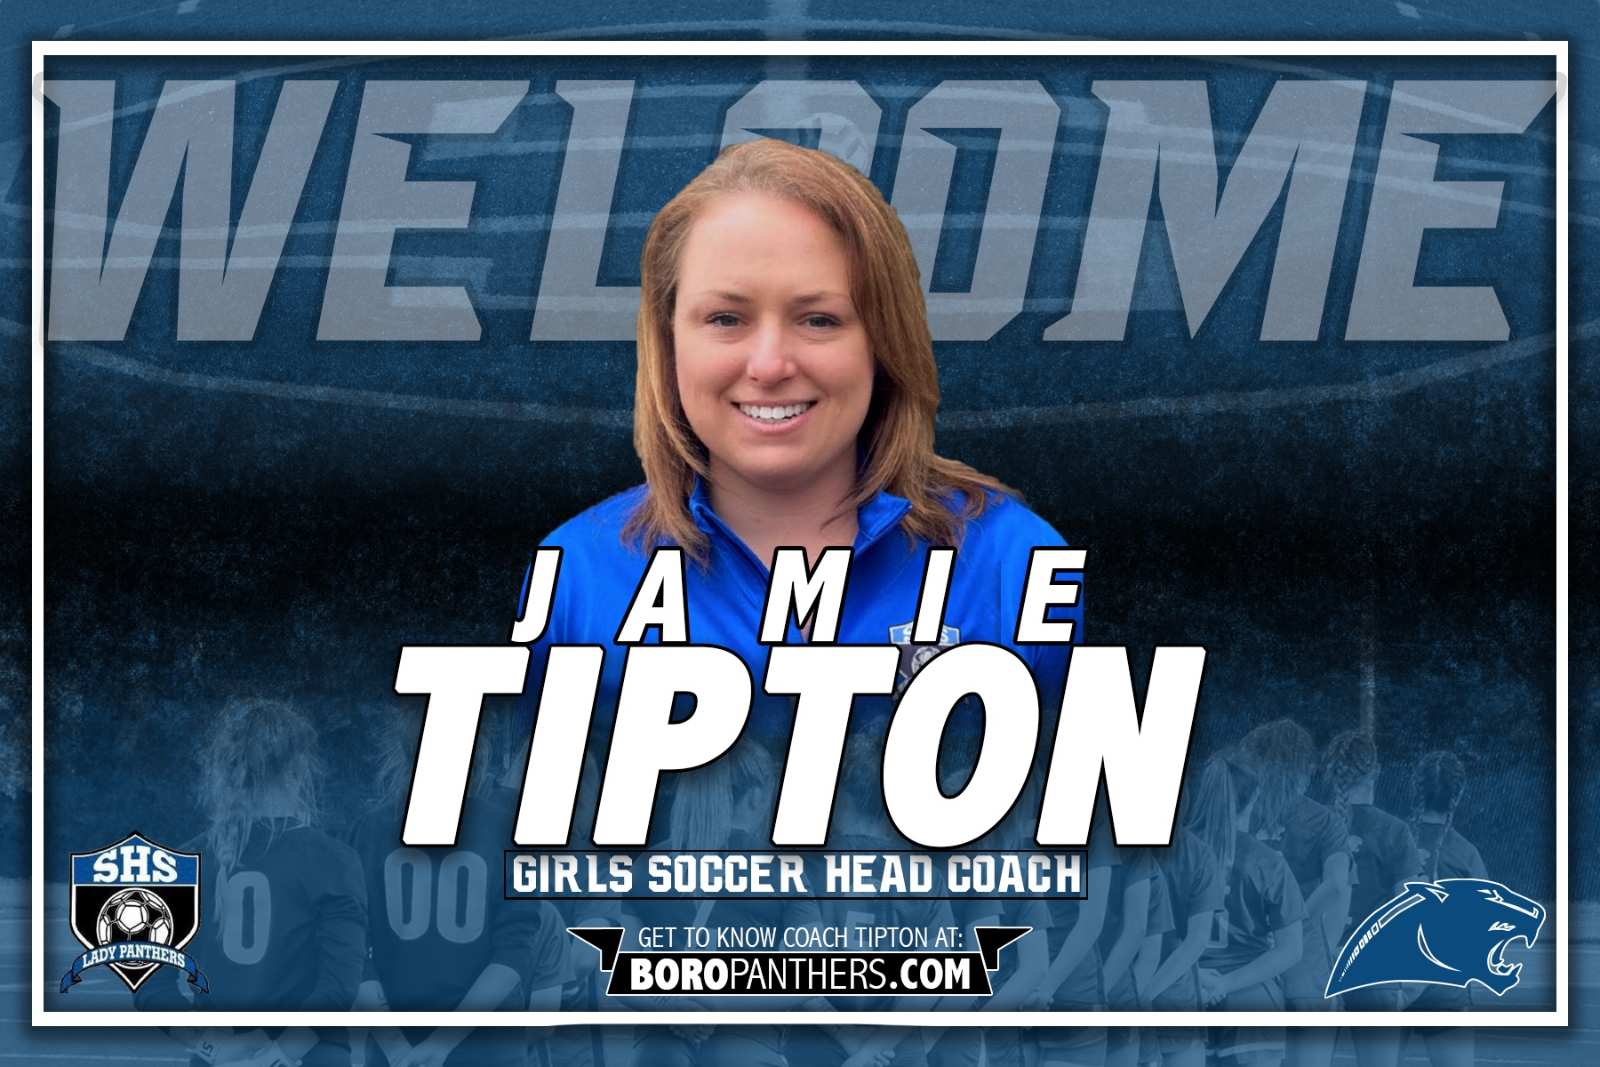 Panthers Name Jamie Tipton as Head Girls Soccer Coach, Pending Board Approval